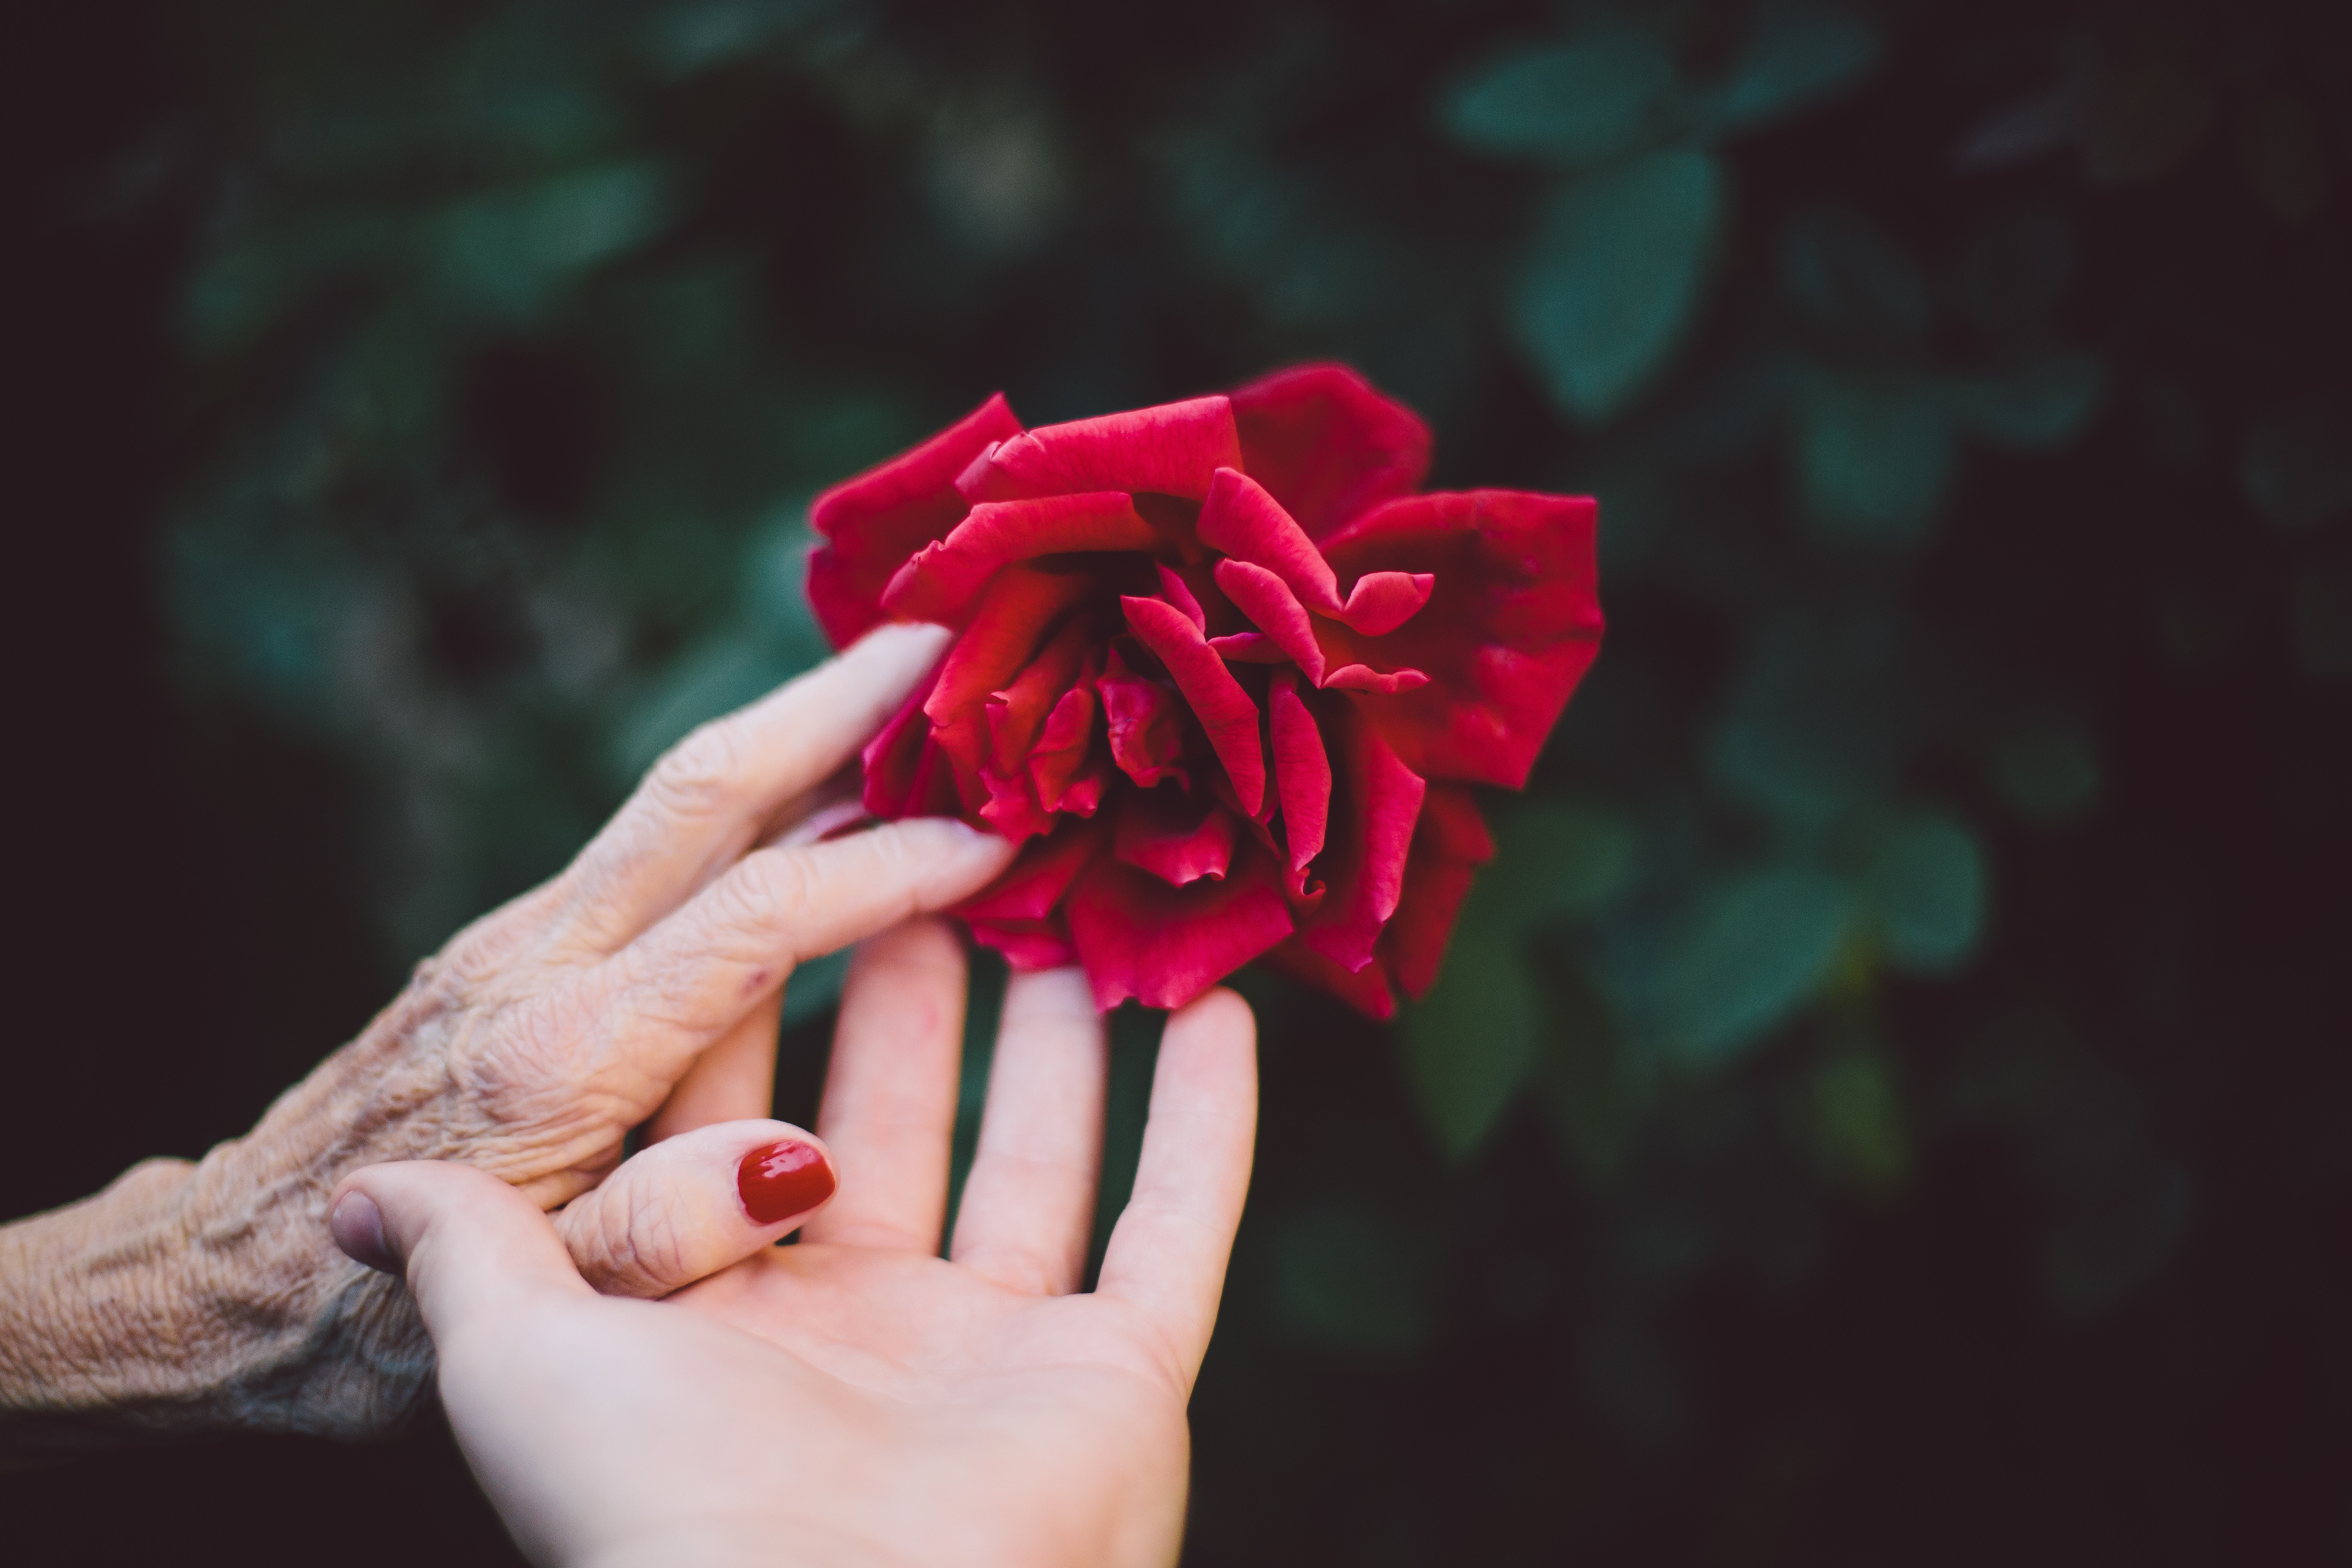 two hands - one old, one young - touching a rose